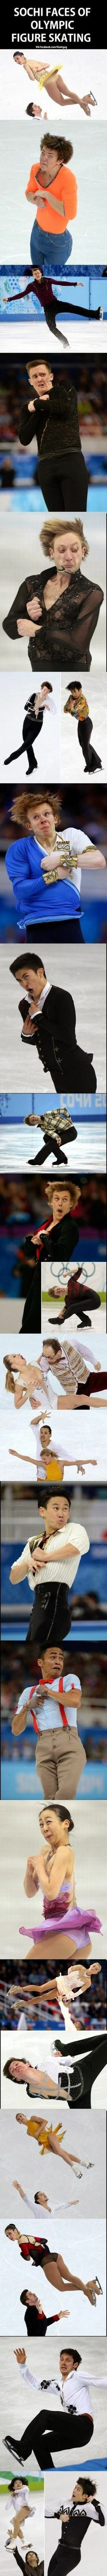 We Ahead: sochi faces of olympic figures skating